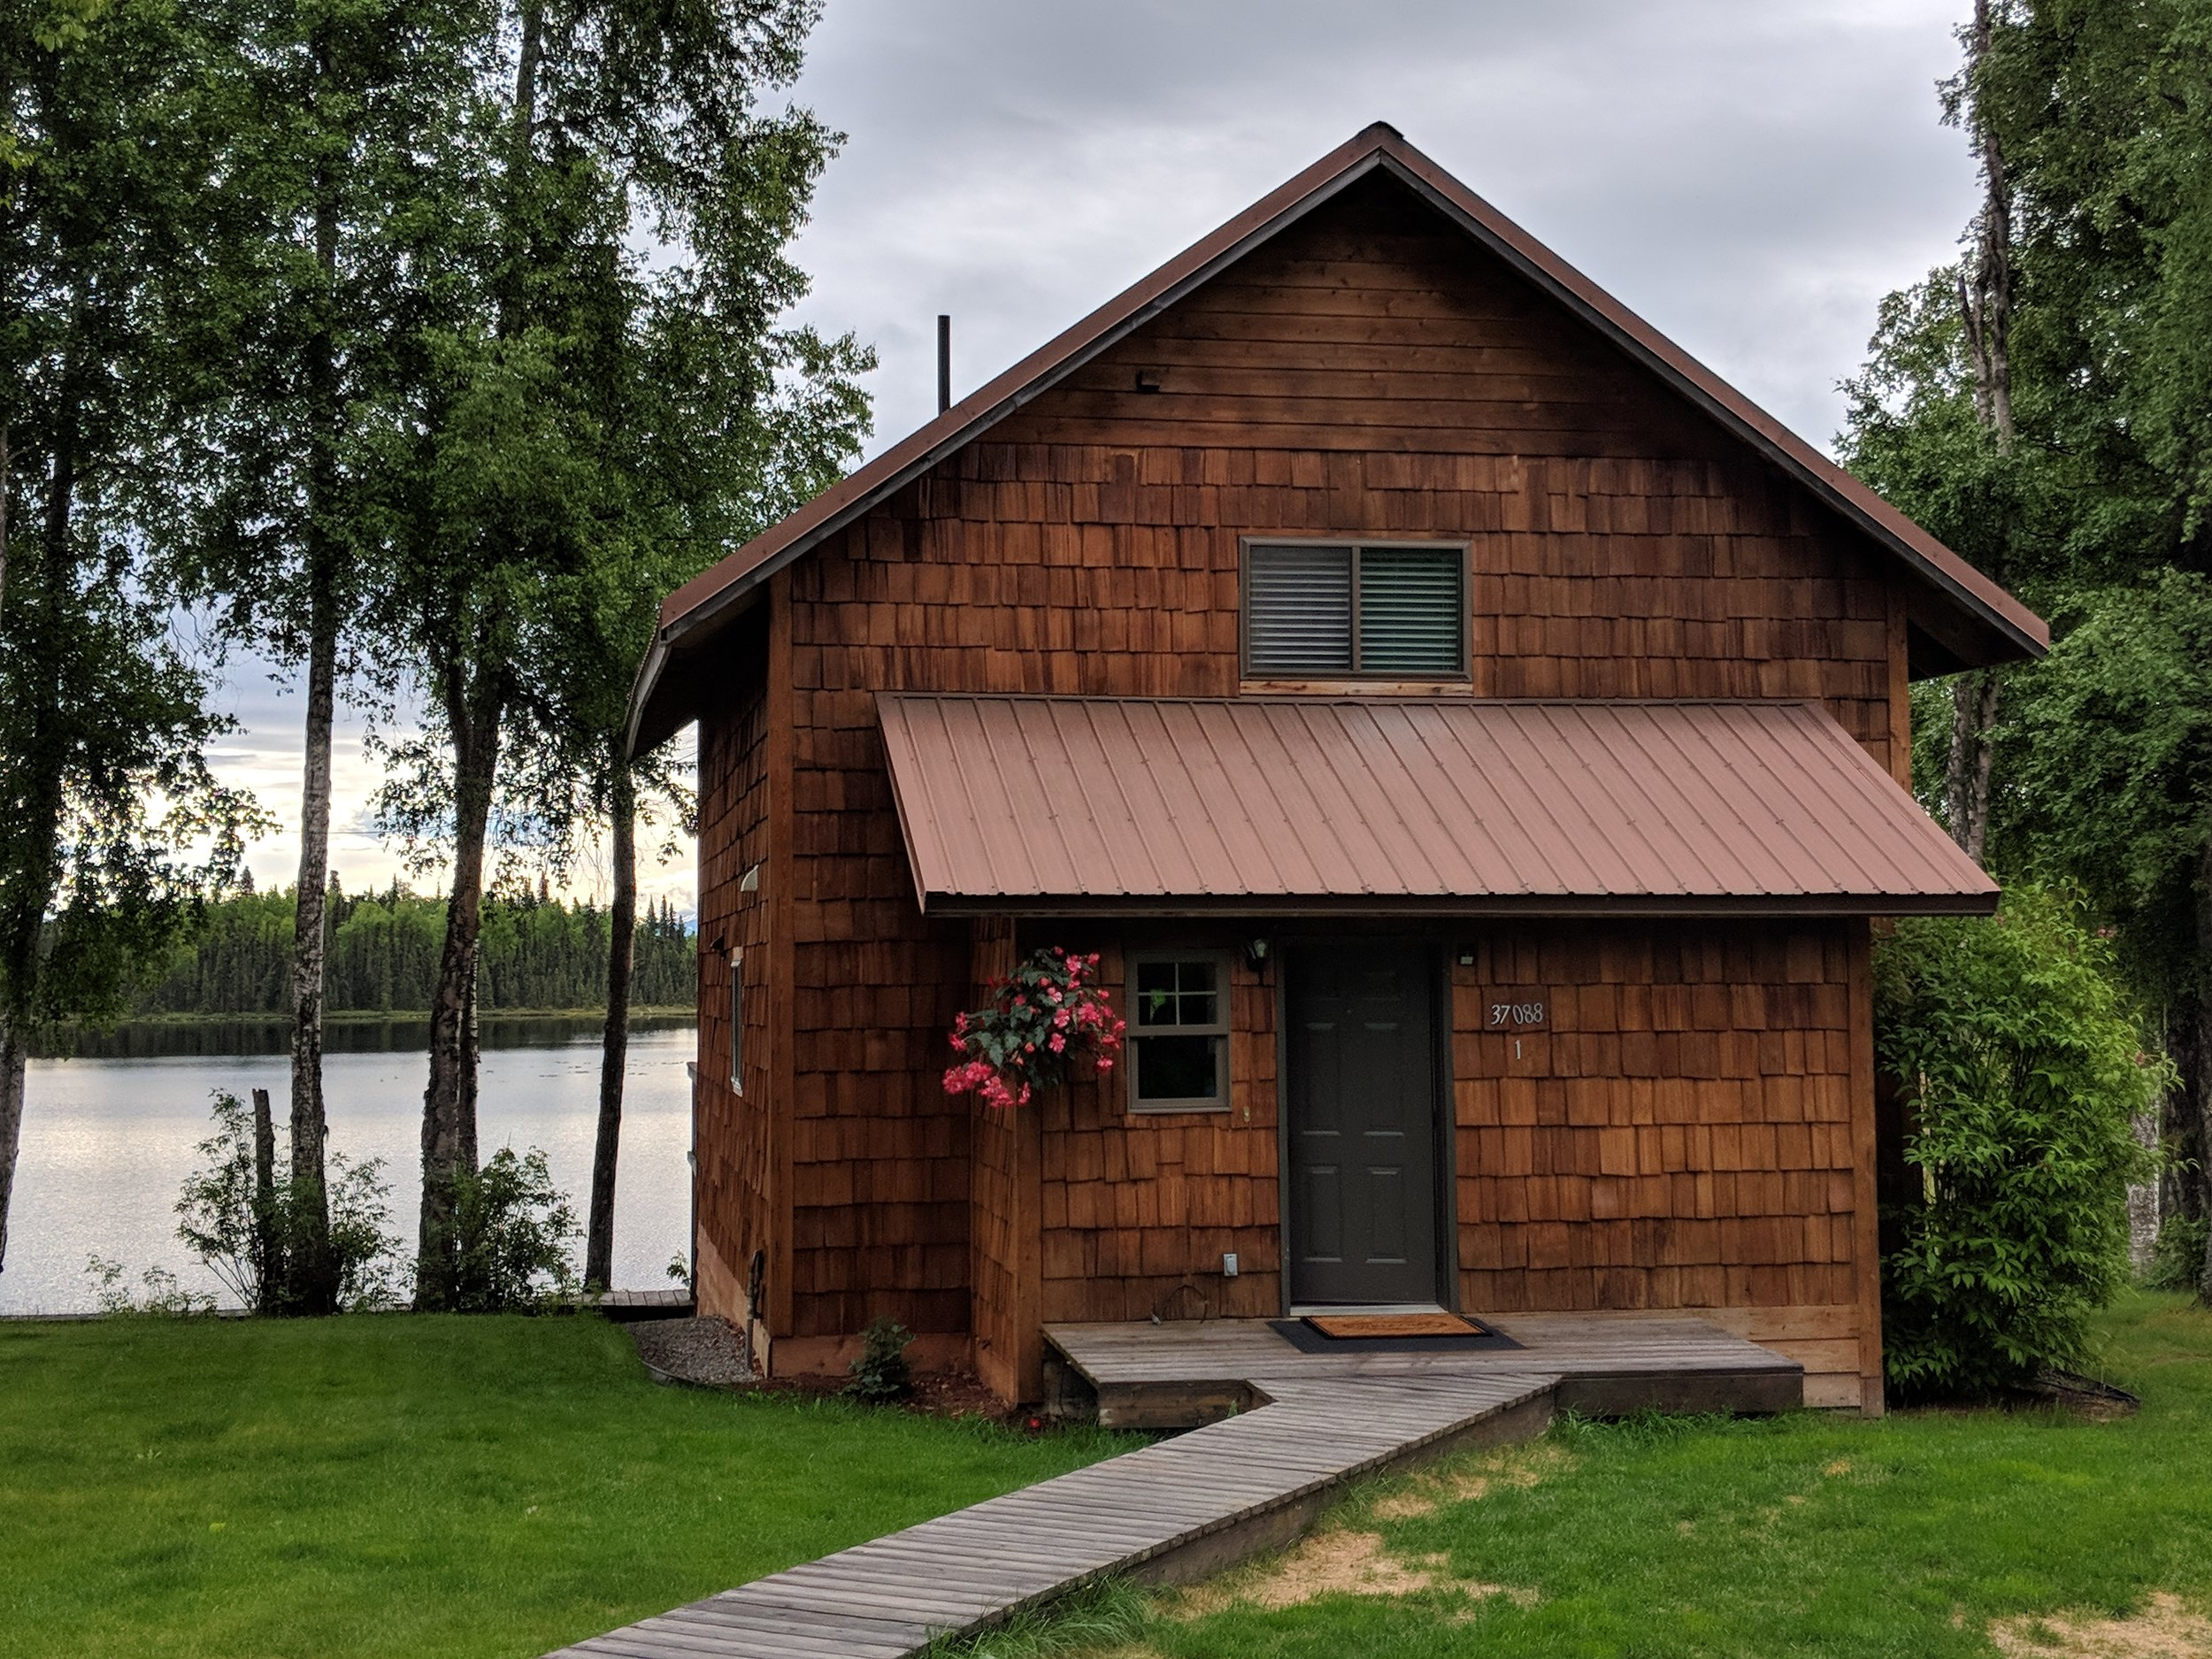 Whisked Away Surprise Travel:  Where we stayed in AK